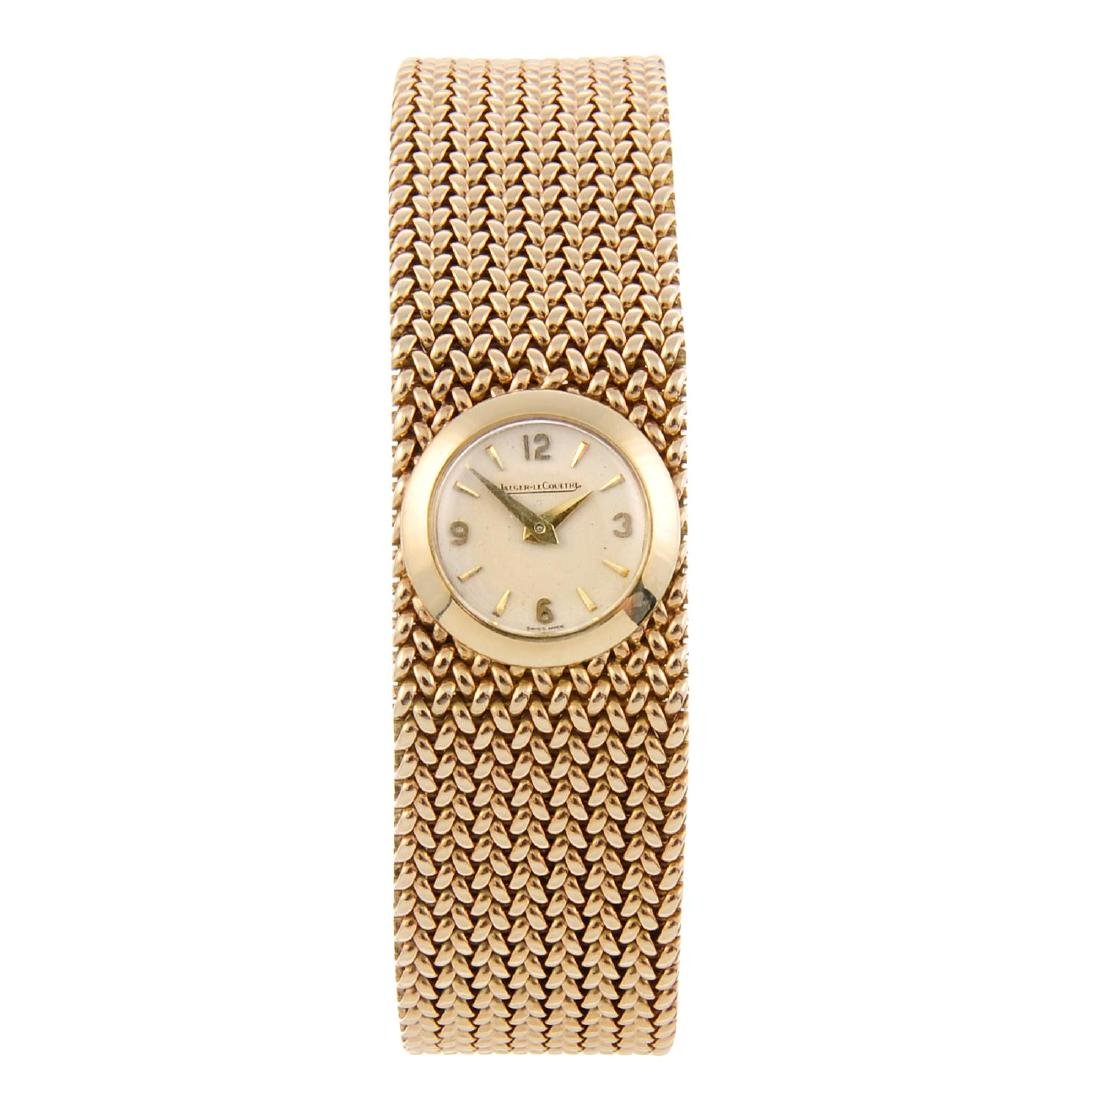 JAEGER-LECOULTRE - a lady's bracelet watch. 9ct yellow